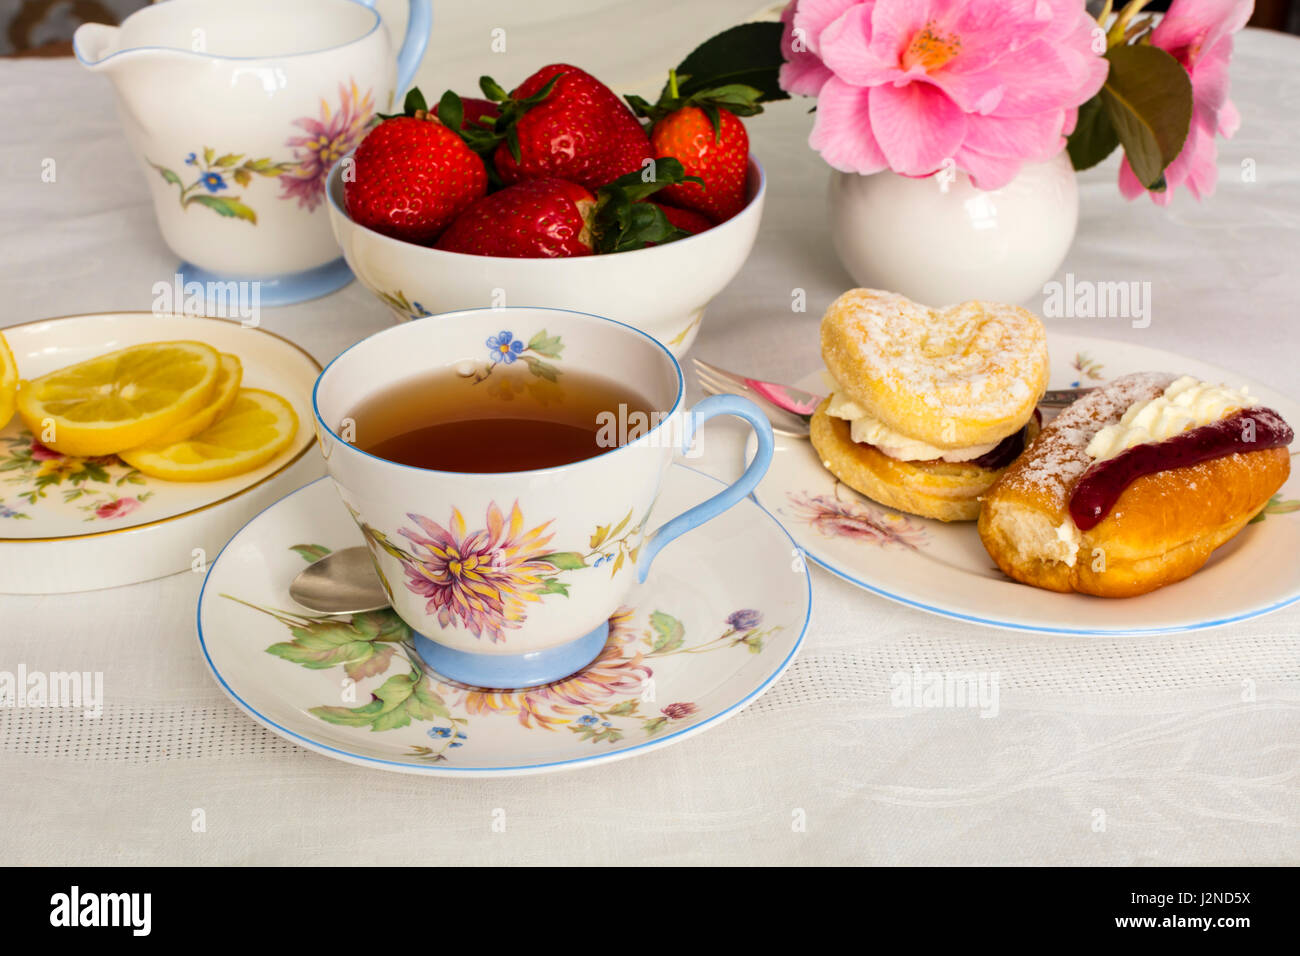 Cup of tea served in a vintage fine china tea cup with cream cakes. - Stock Image